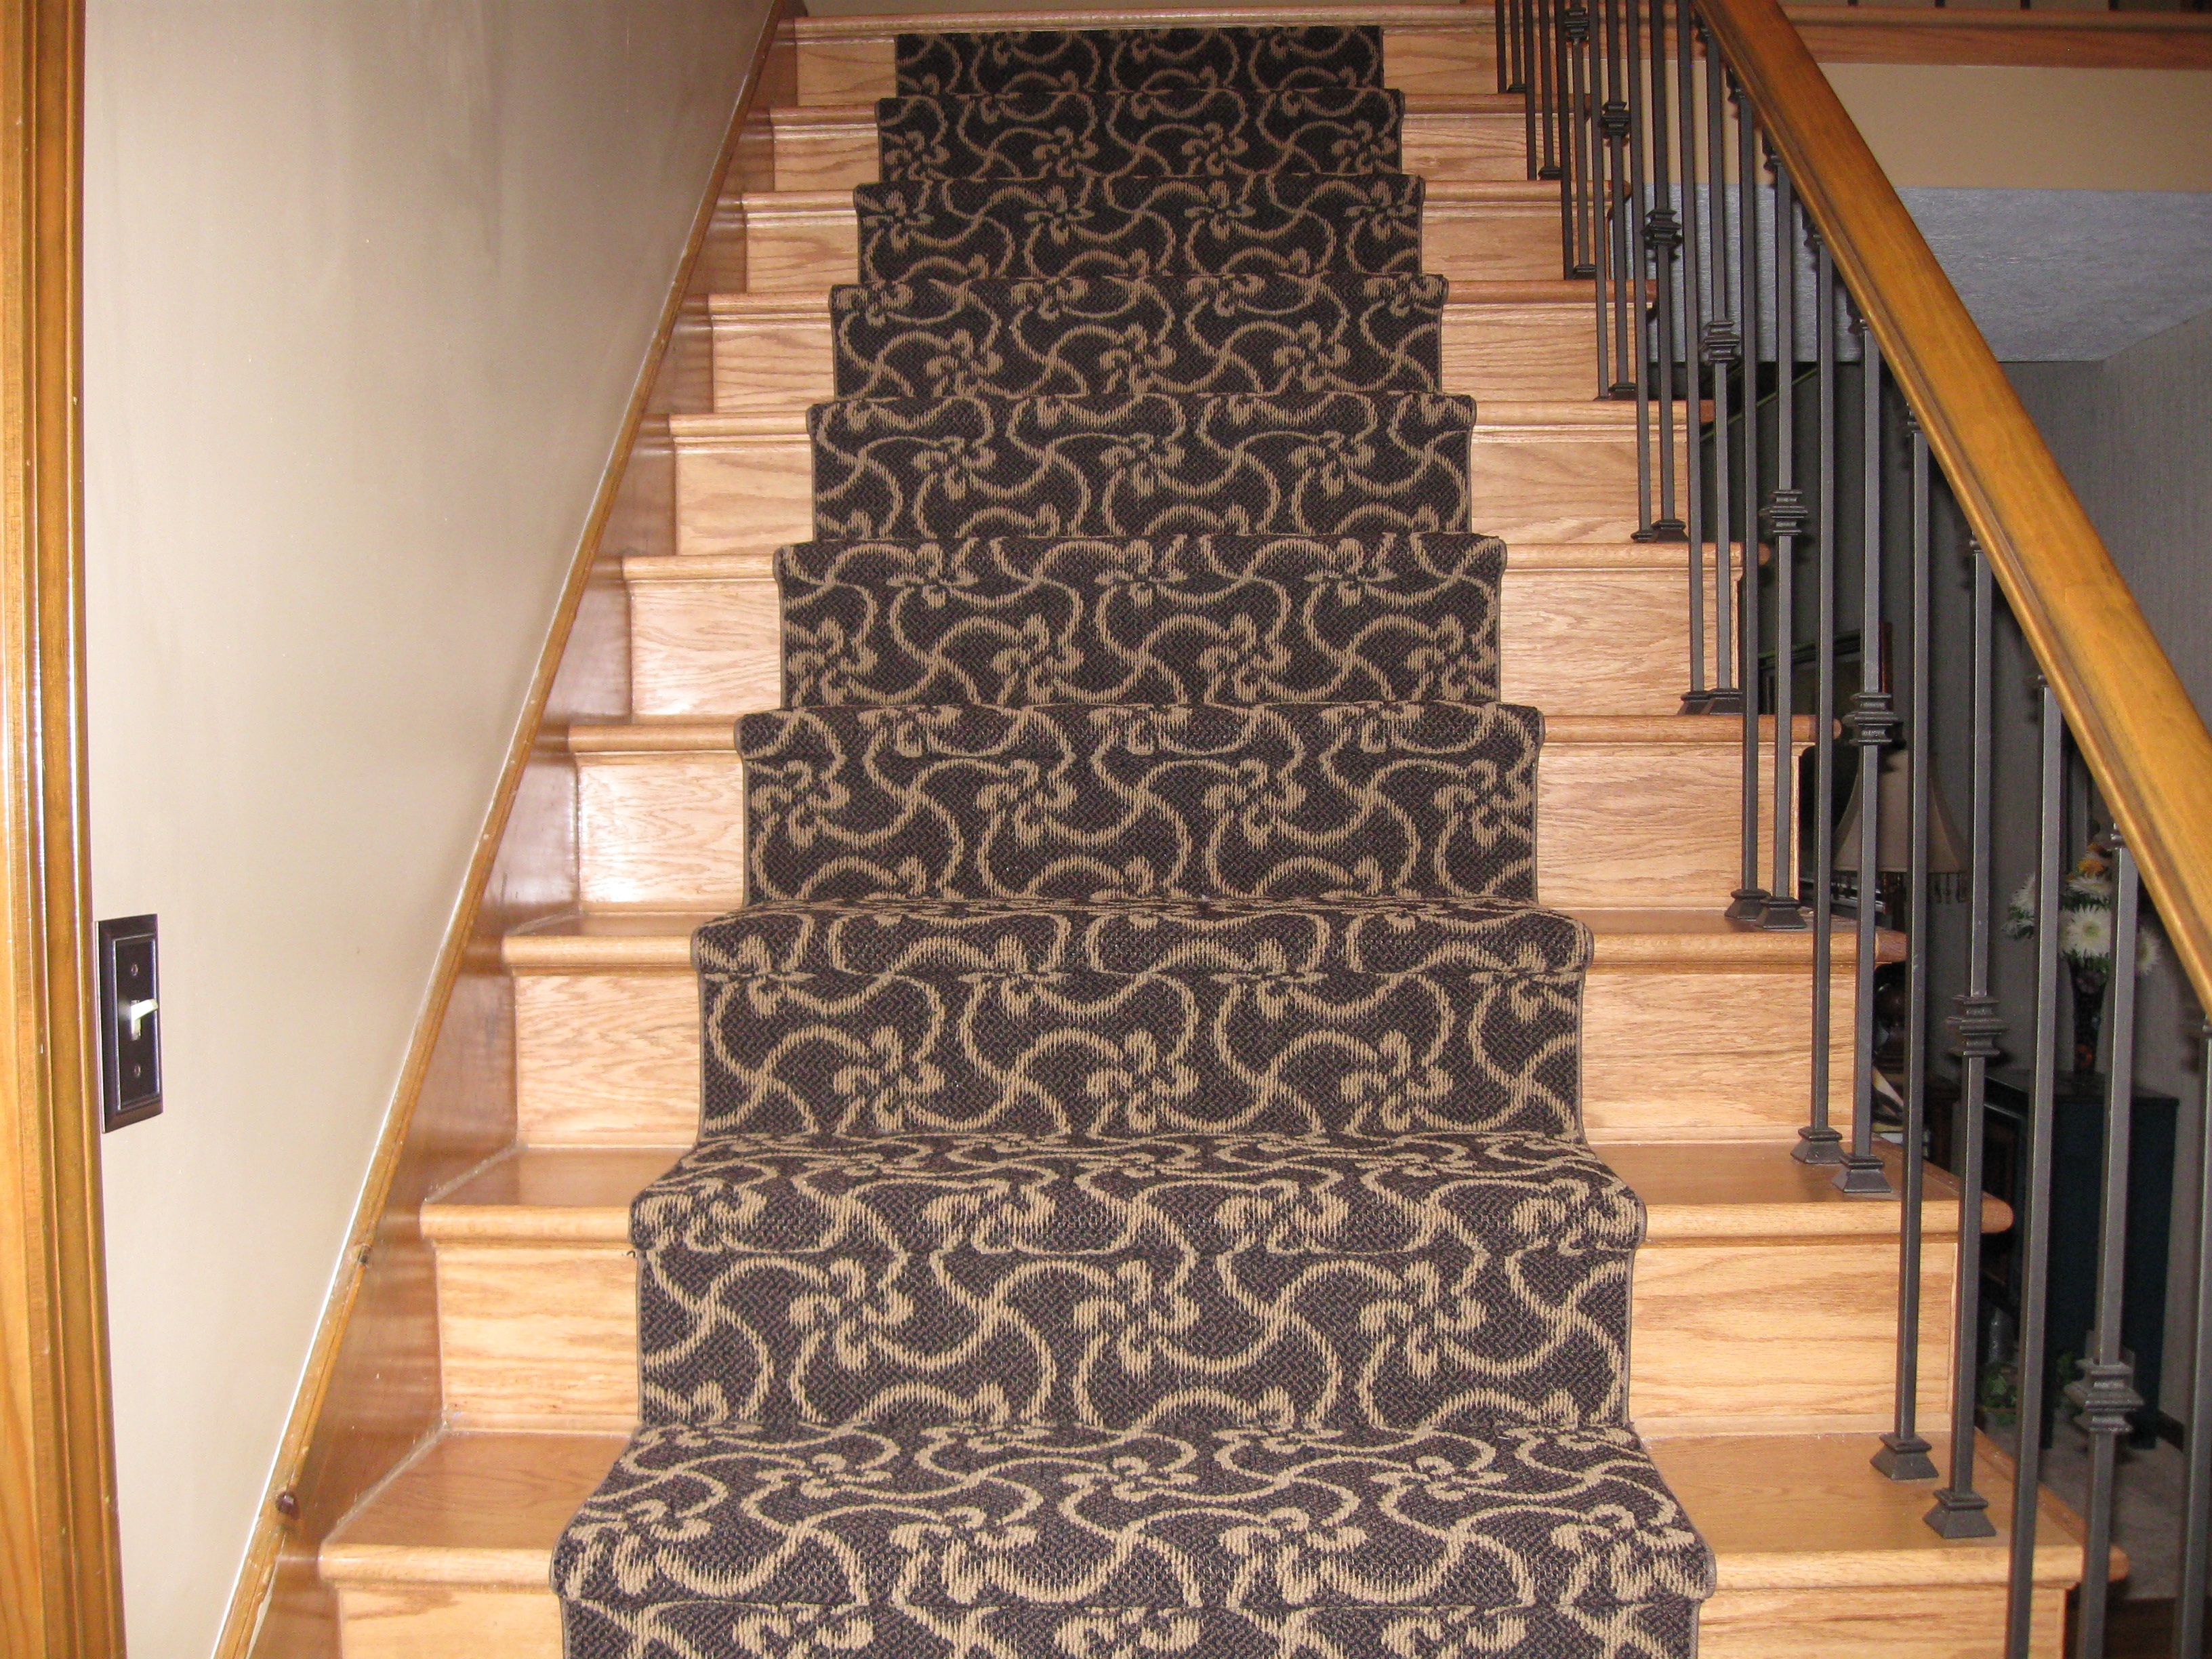 Real Estate Tips Installing Carpet Runner On Wood Stairs Intended For Rugs For Stair Steps (View 15 of 15)